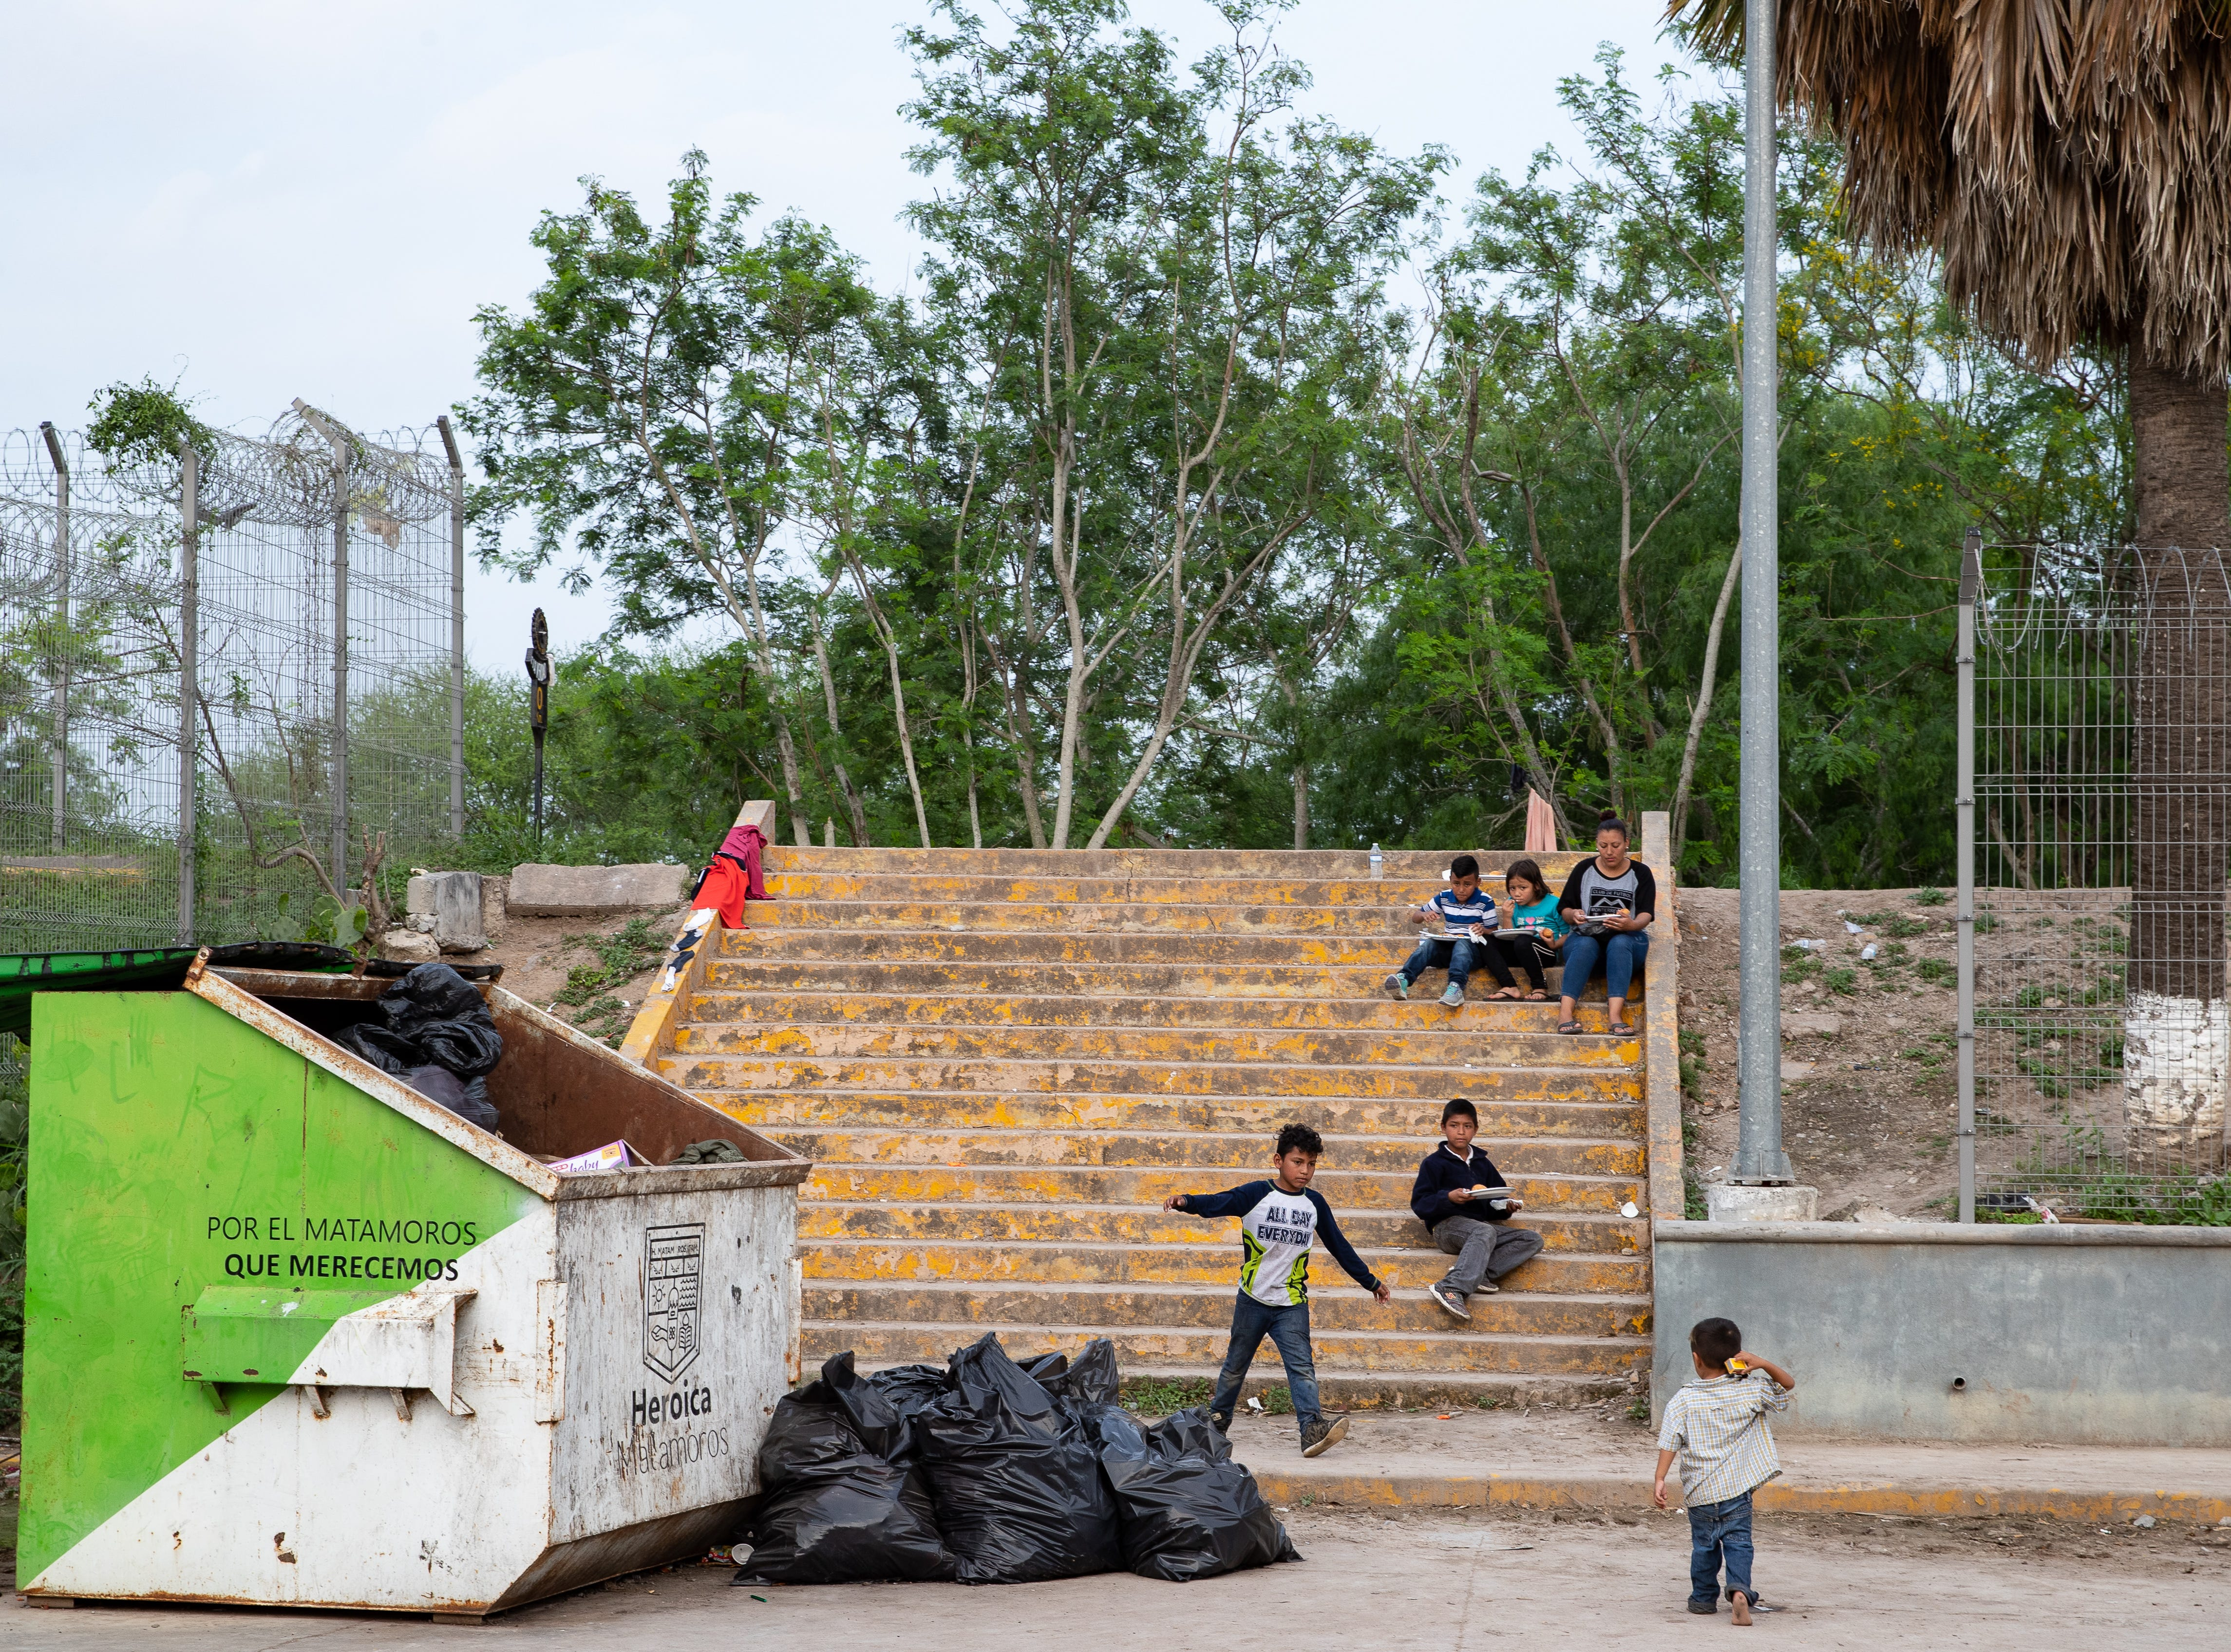 A group of Central American migrants on Thursday, April 4, 2019, waiting to seek asylum in the U.S  eat their dinner from Team Brownsville on steps near  the Matamoros Toll Plaza in Mexico where many of them have been camped out for weeks.